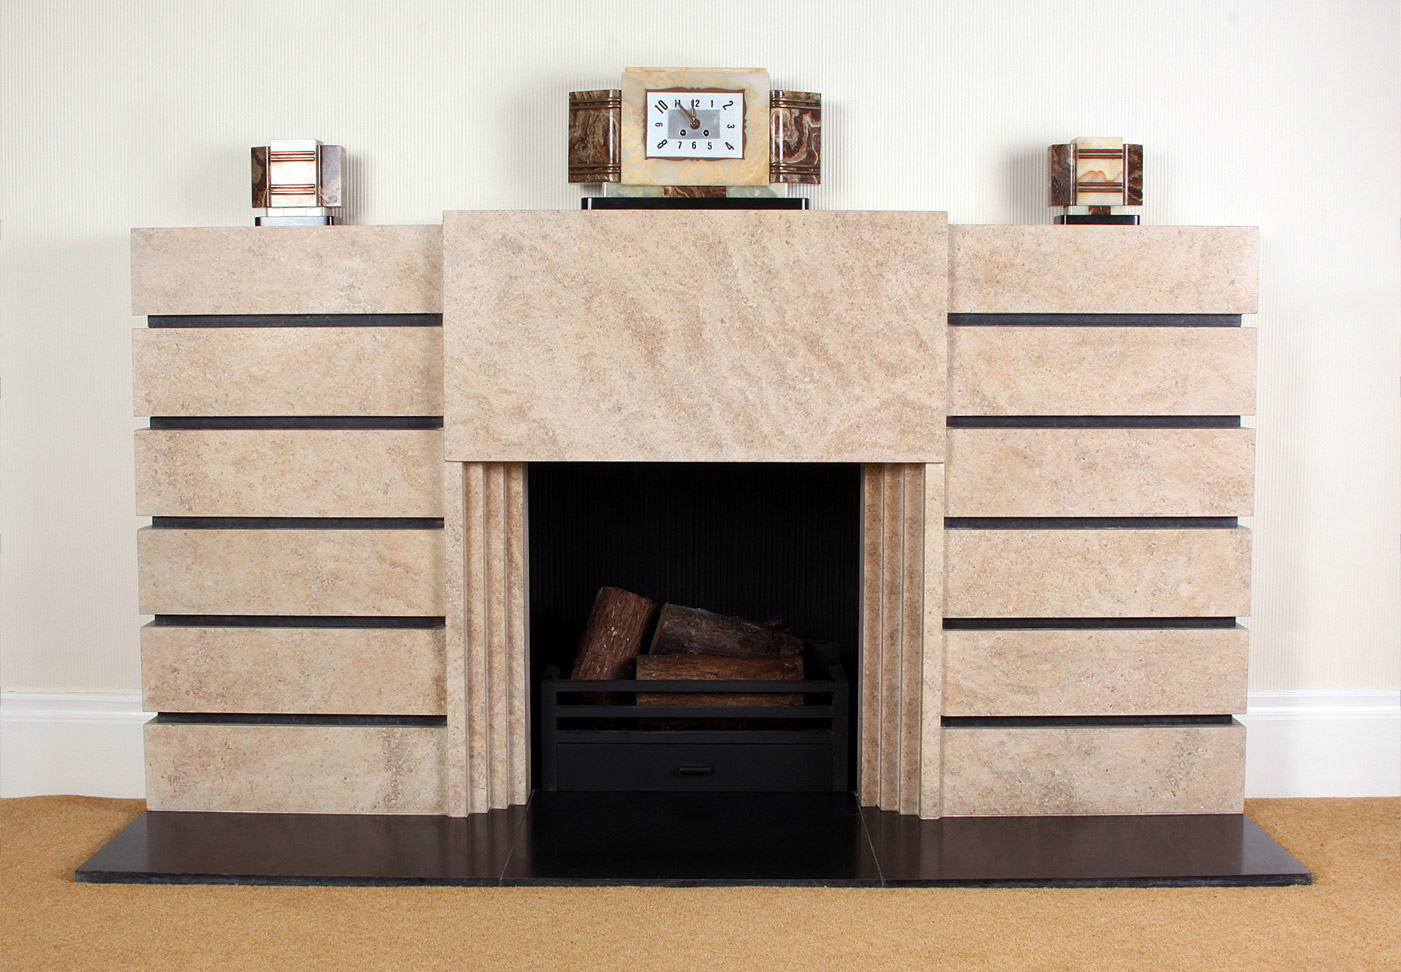 9. Art Deco fireplace in Ancaster Weatherbed with contrasting black granite detail – South Wales